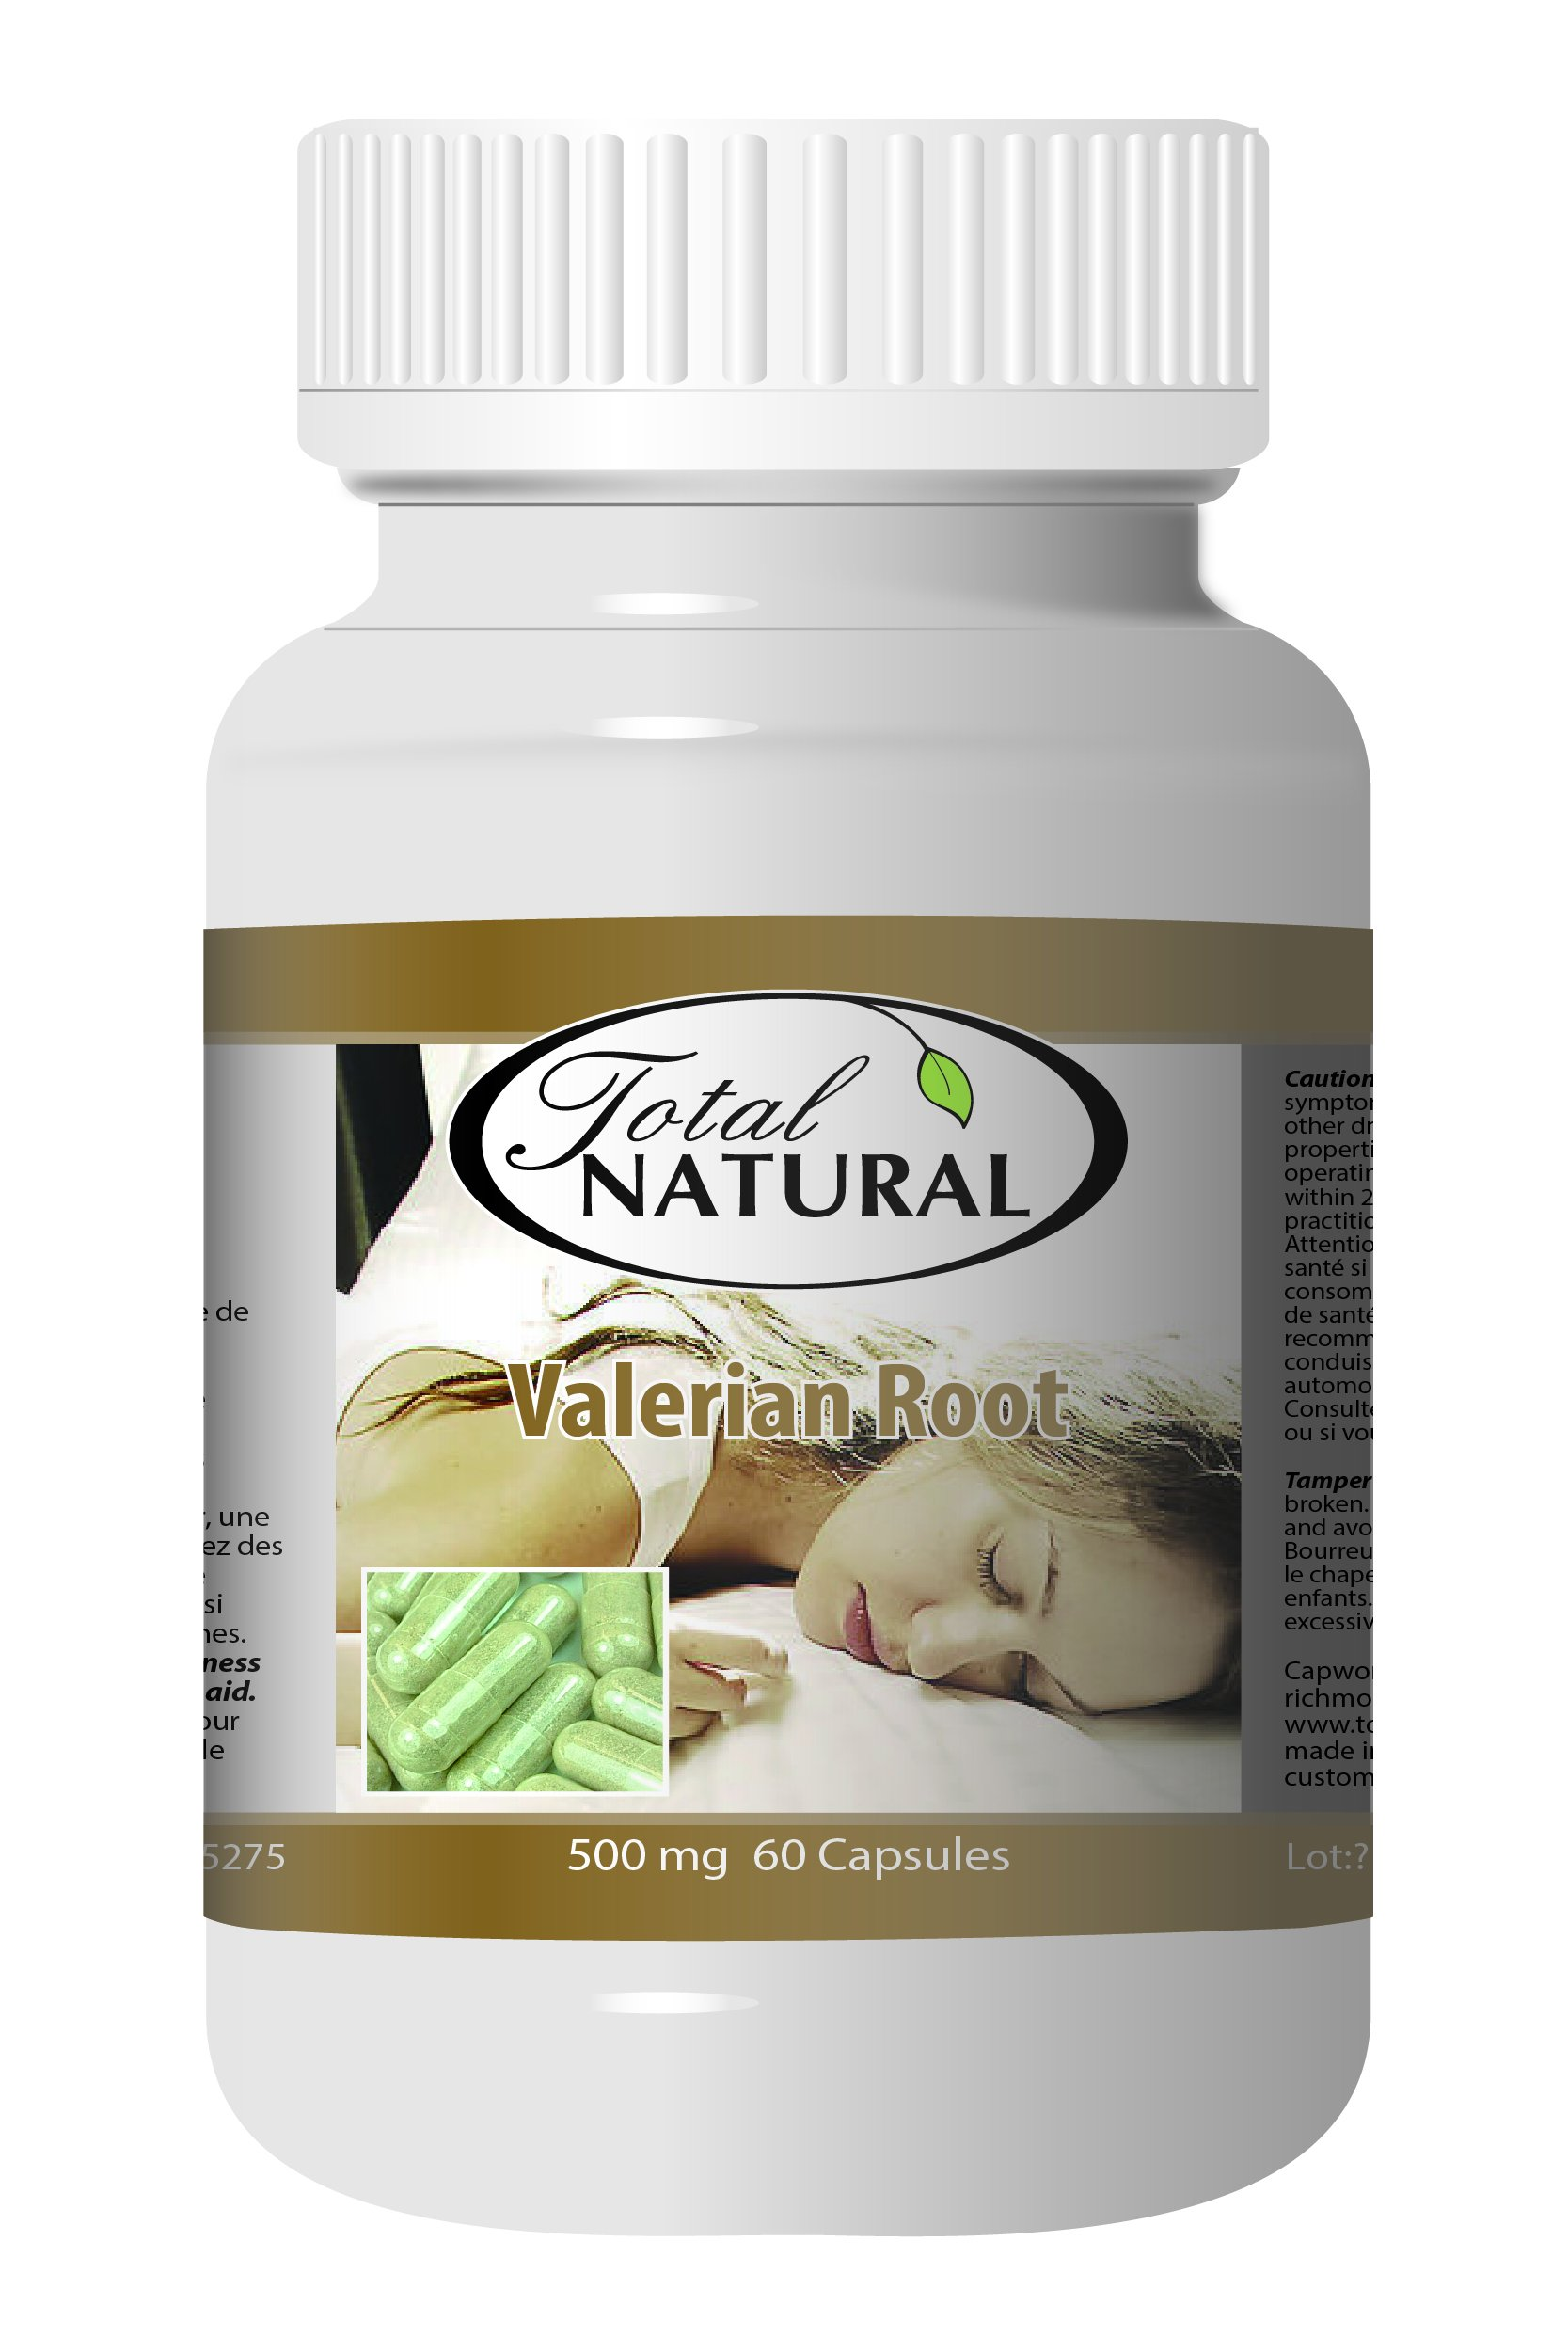 Valerian Root 500mg 60c - [12 bottles] Sleep Control